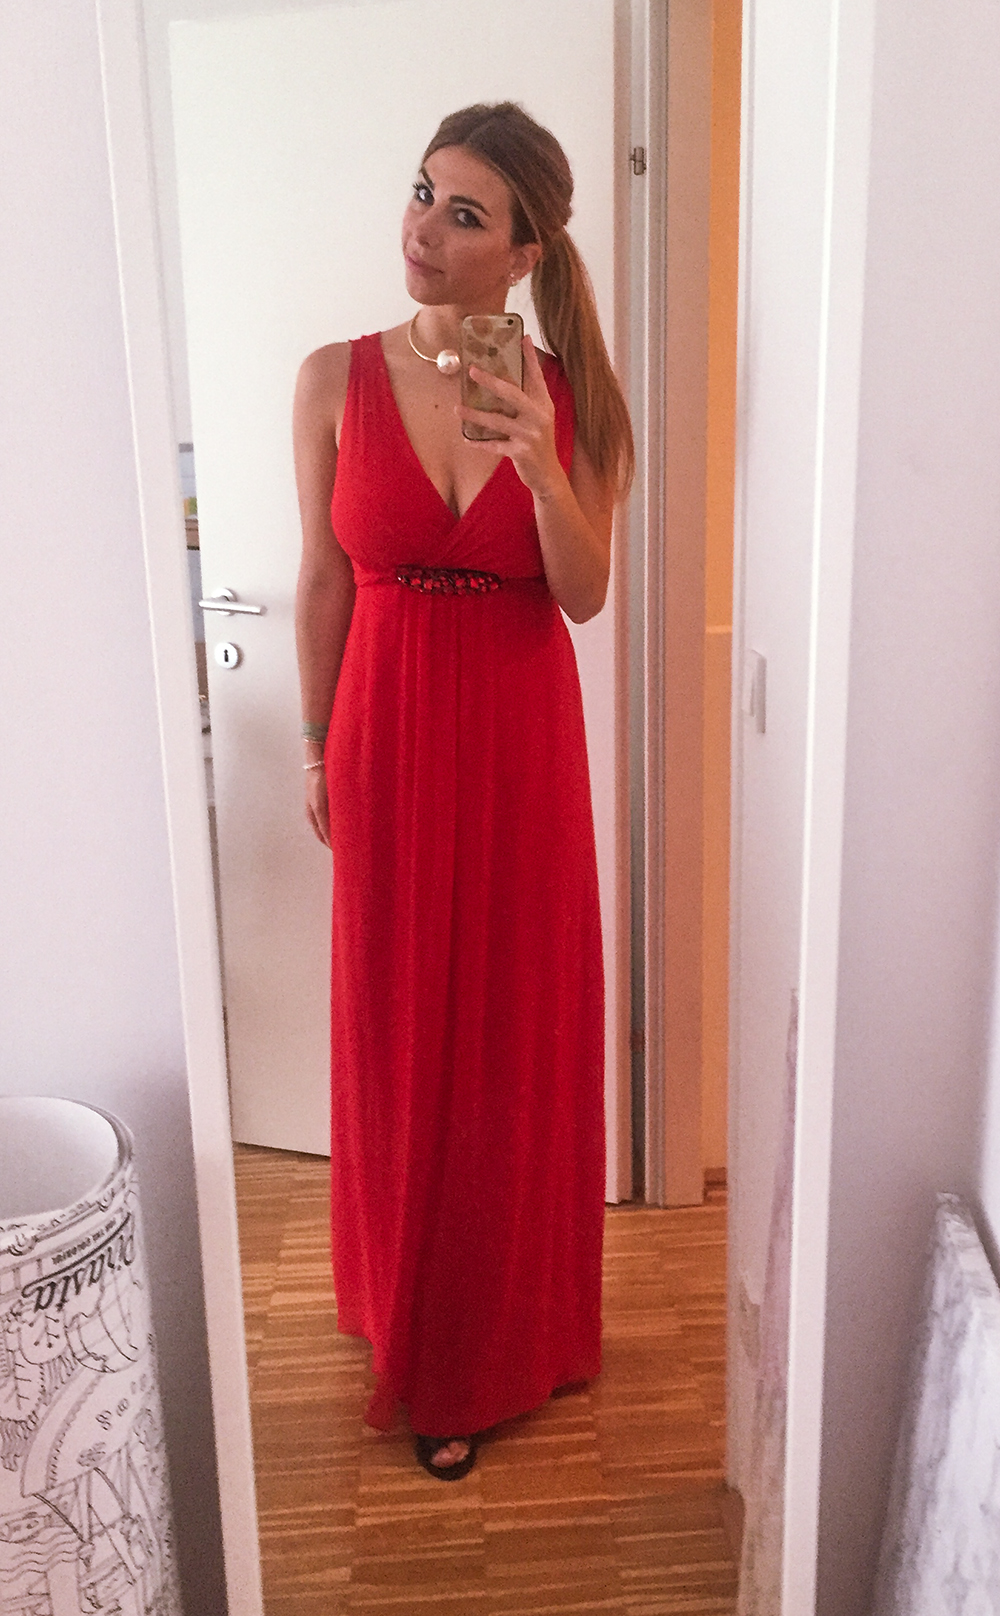 Red_dress_Luisa_Lion_Evening_Gown_Abiball_Abendkleider_C&A_Style_Roulette